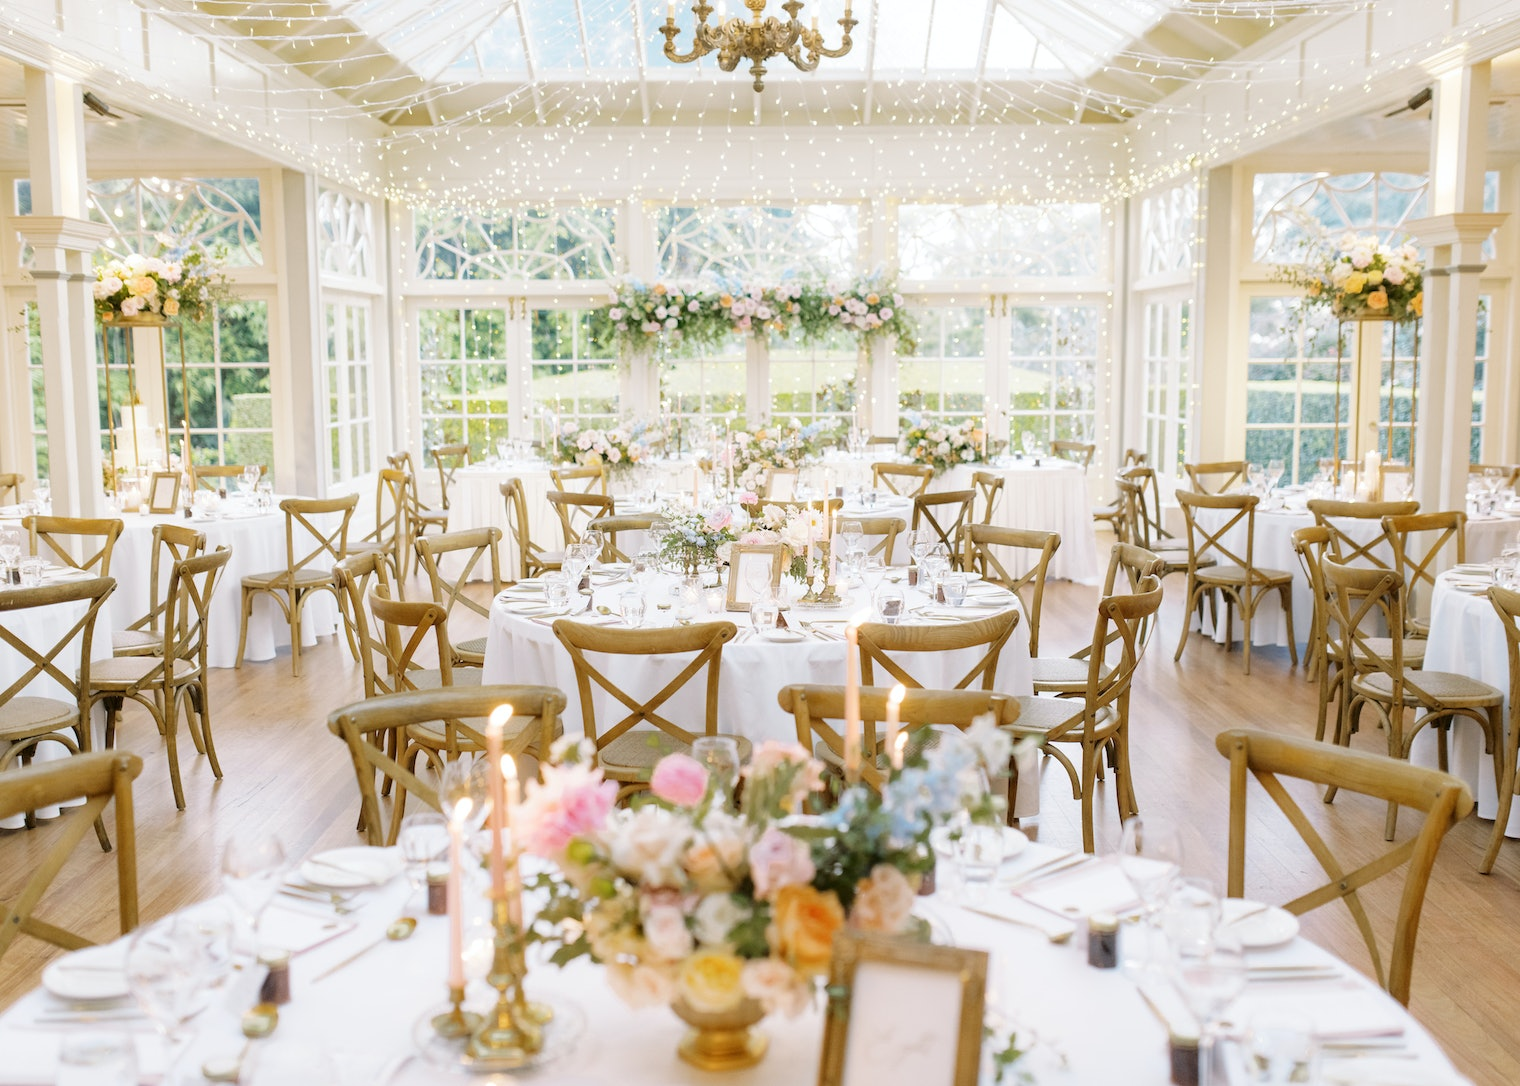 Wedding reception with flowers and fairylights